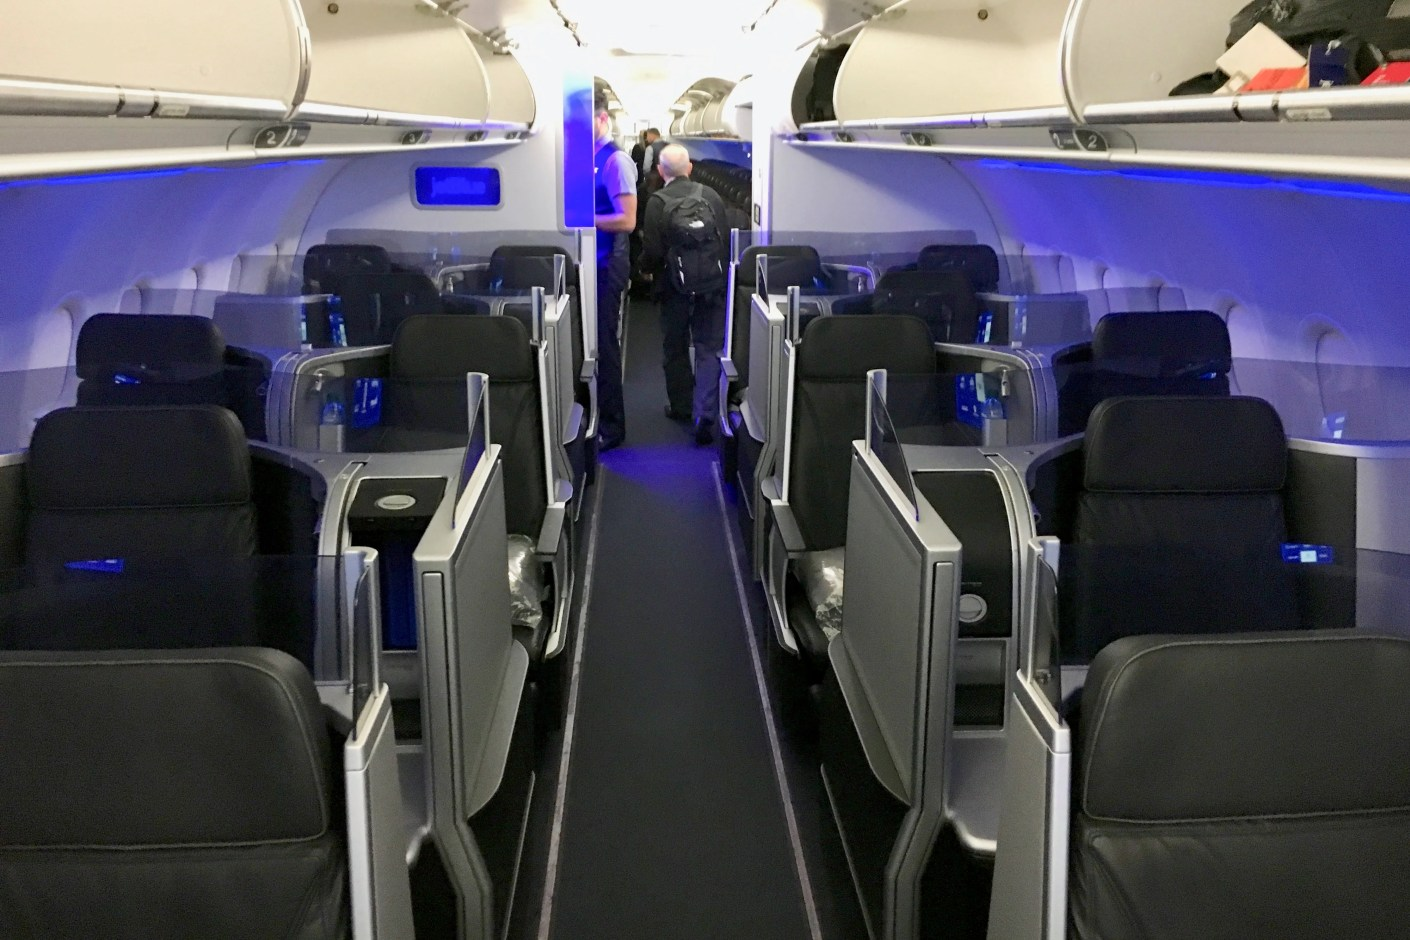 Your friends will soon be able to help get you closer to JetBlue Mint. Photo by Benji Stawski.